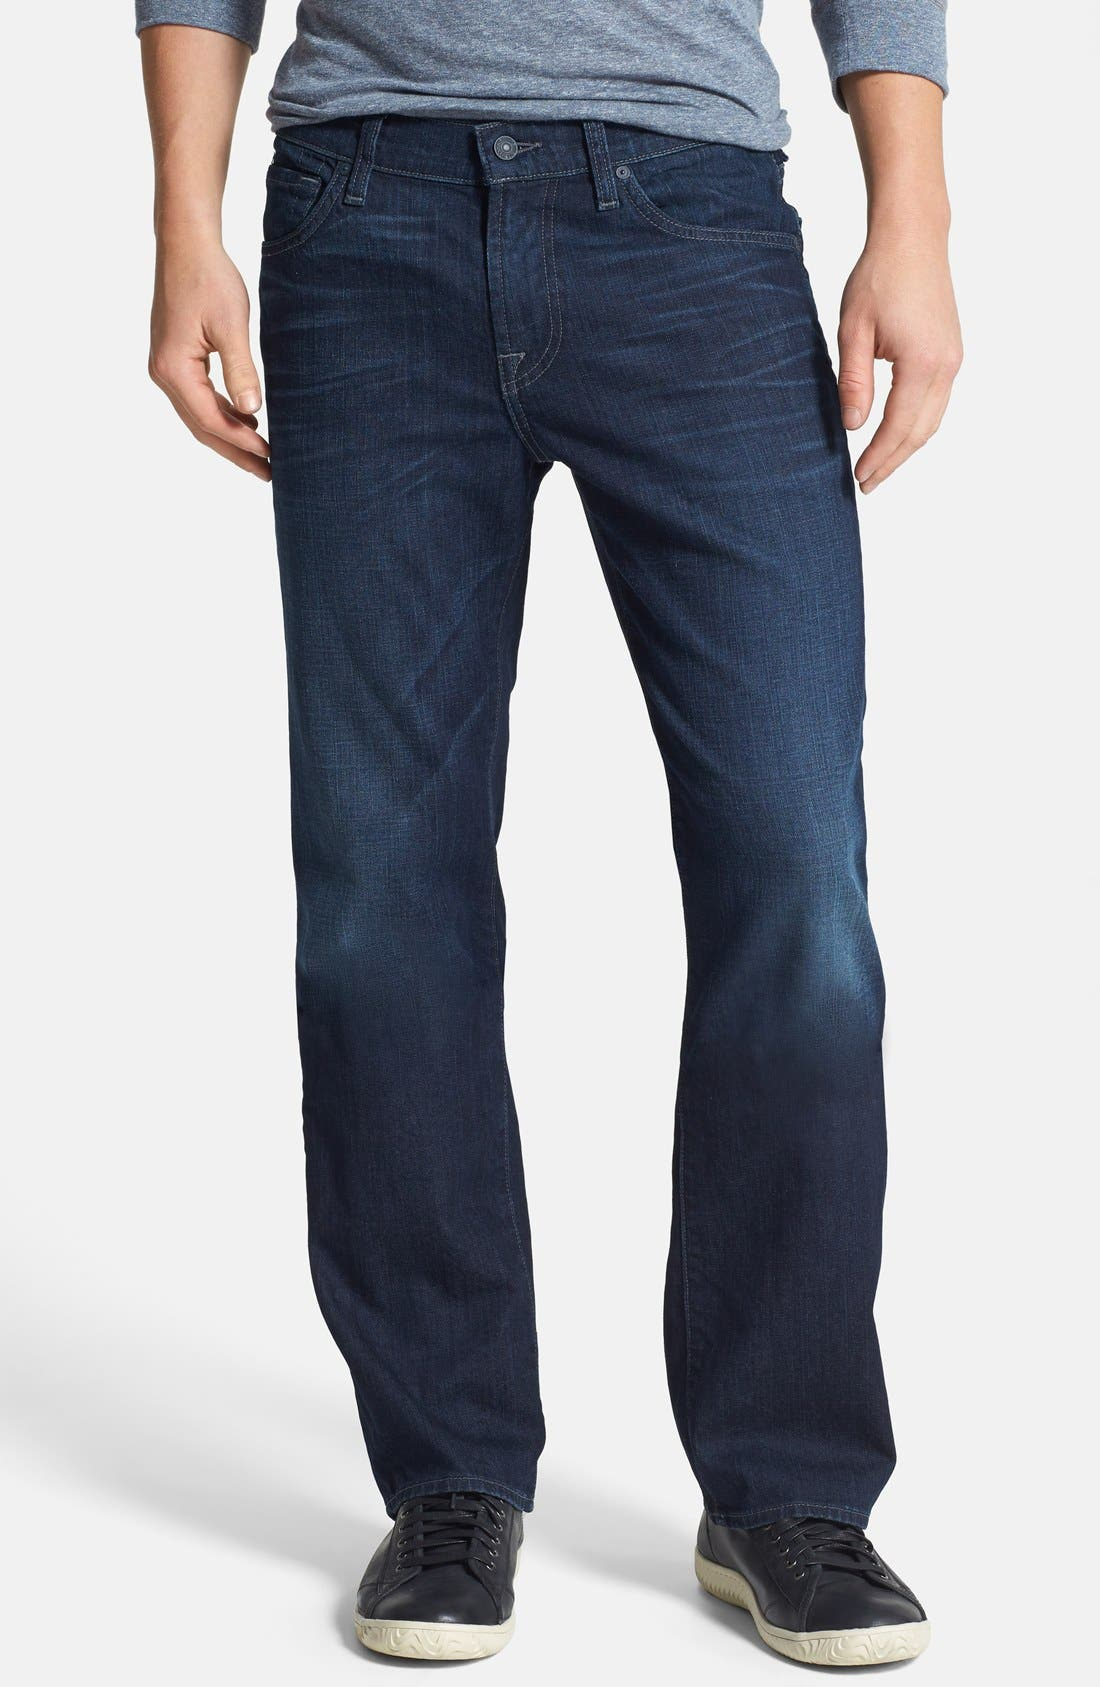 Main Image - 7 For All Mankind® 'Austyn' Relaxed Straight Leg Jeans (Broadview Way)